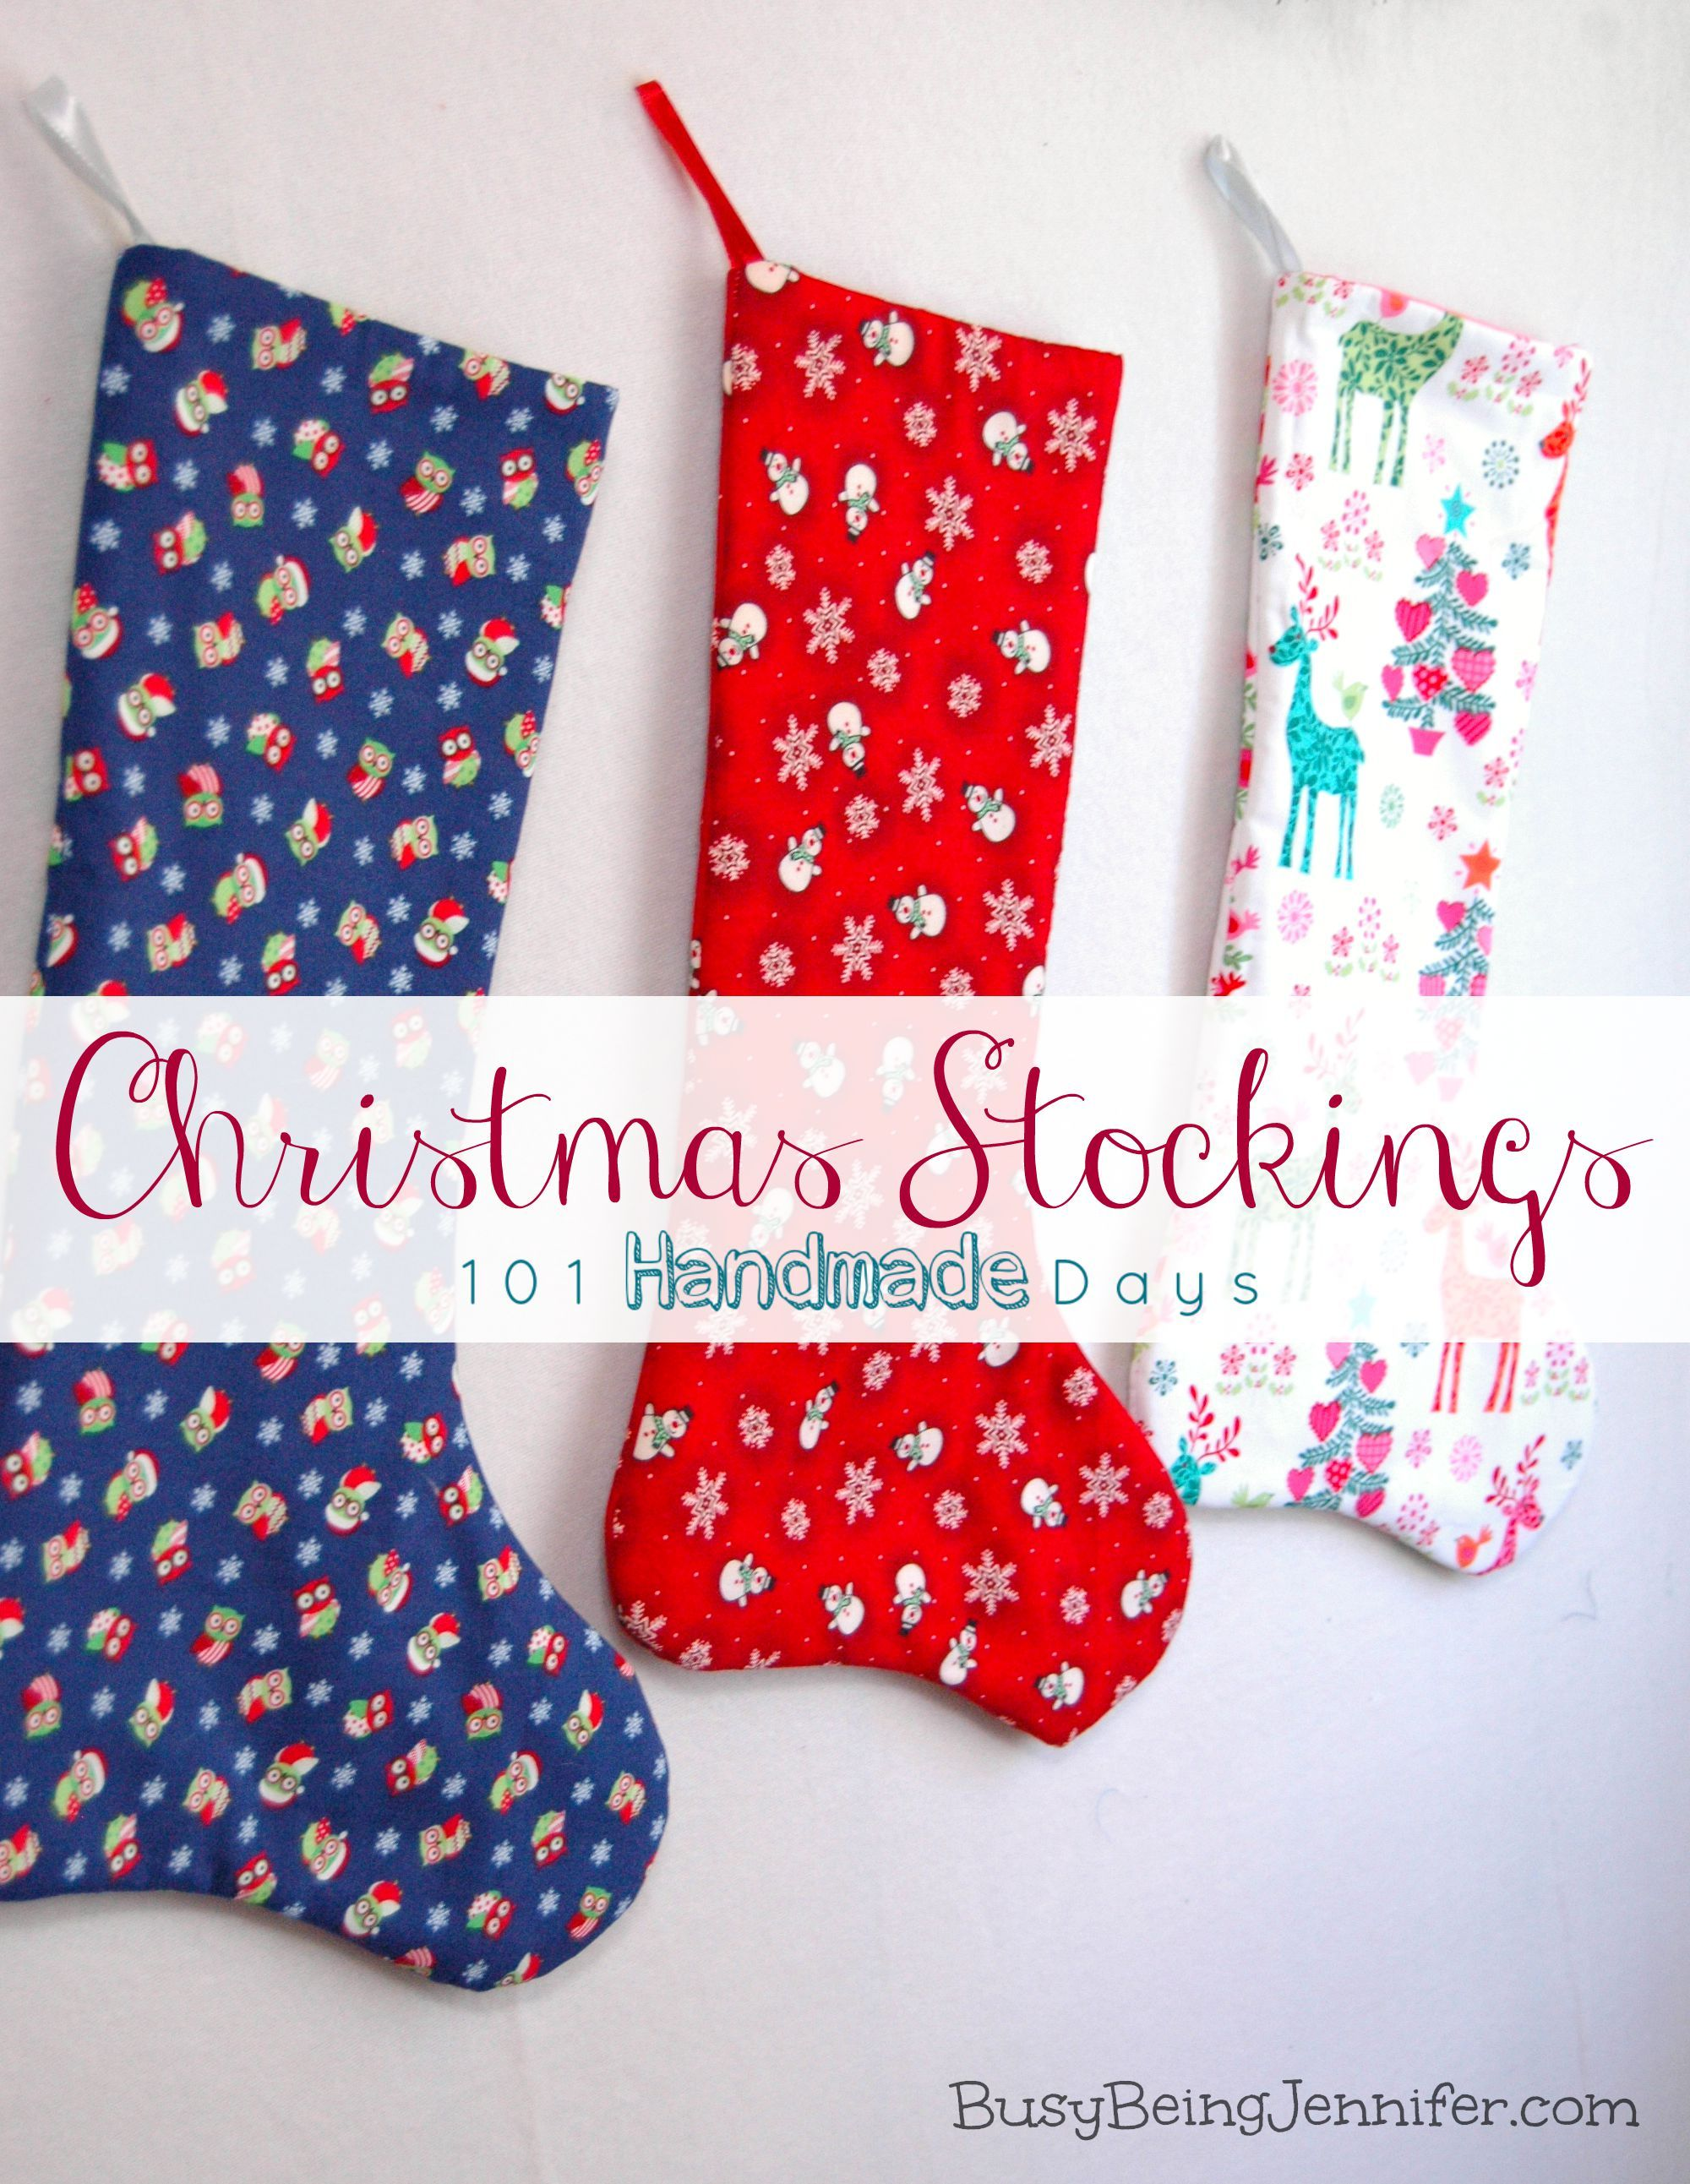 Not all Christmas Stockings need to be an elaborate undertaking. With some cute fabric